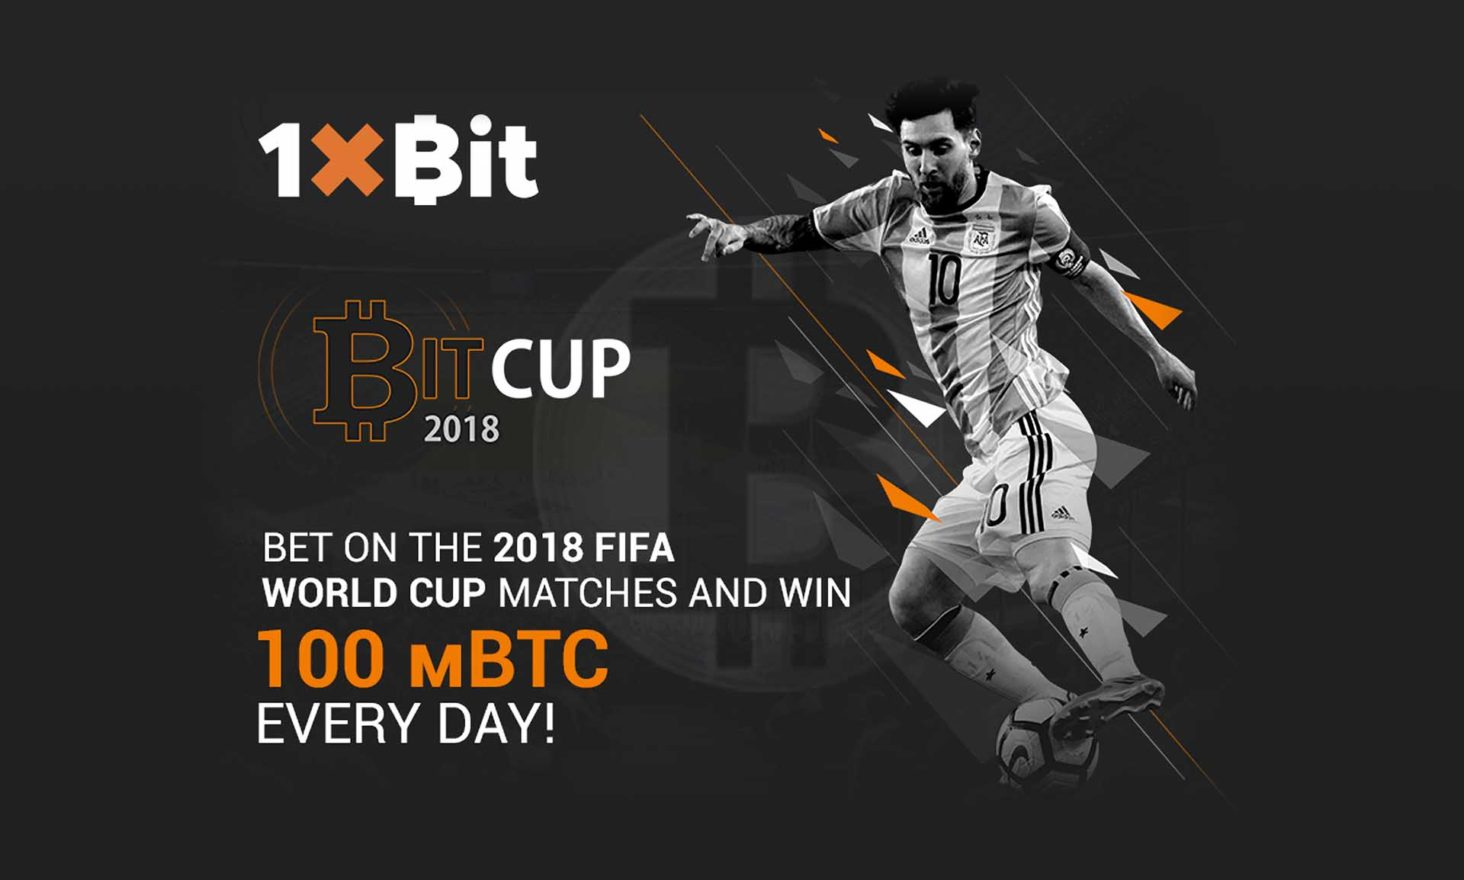 Everybody Can Take Advantage of the World Cup with 1xBit